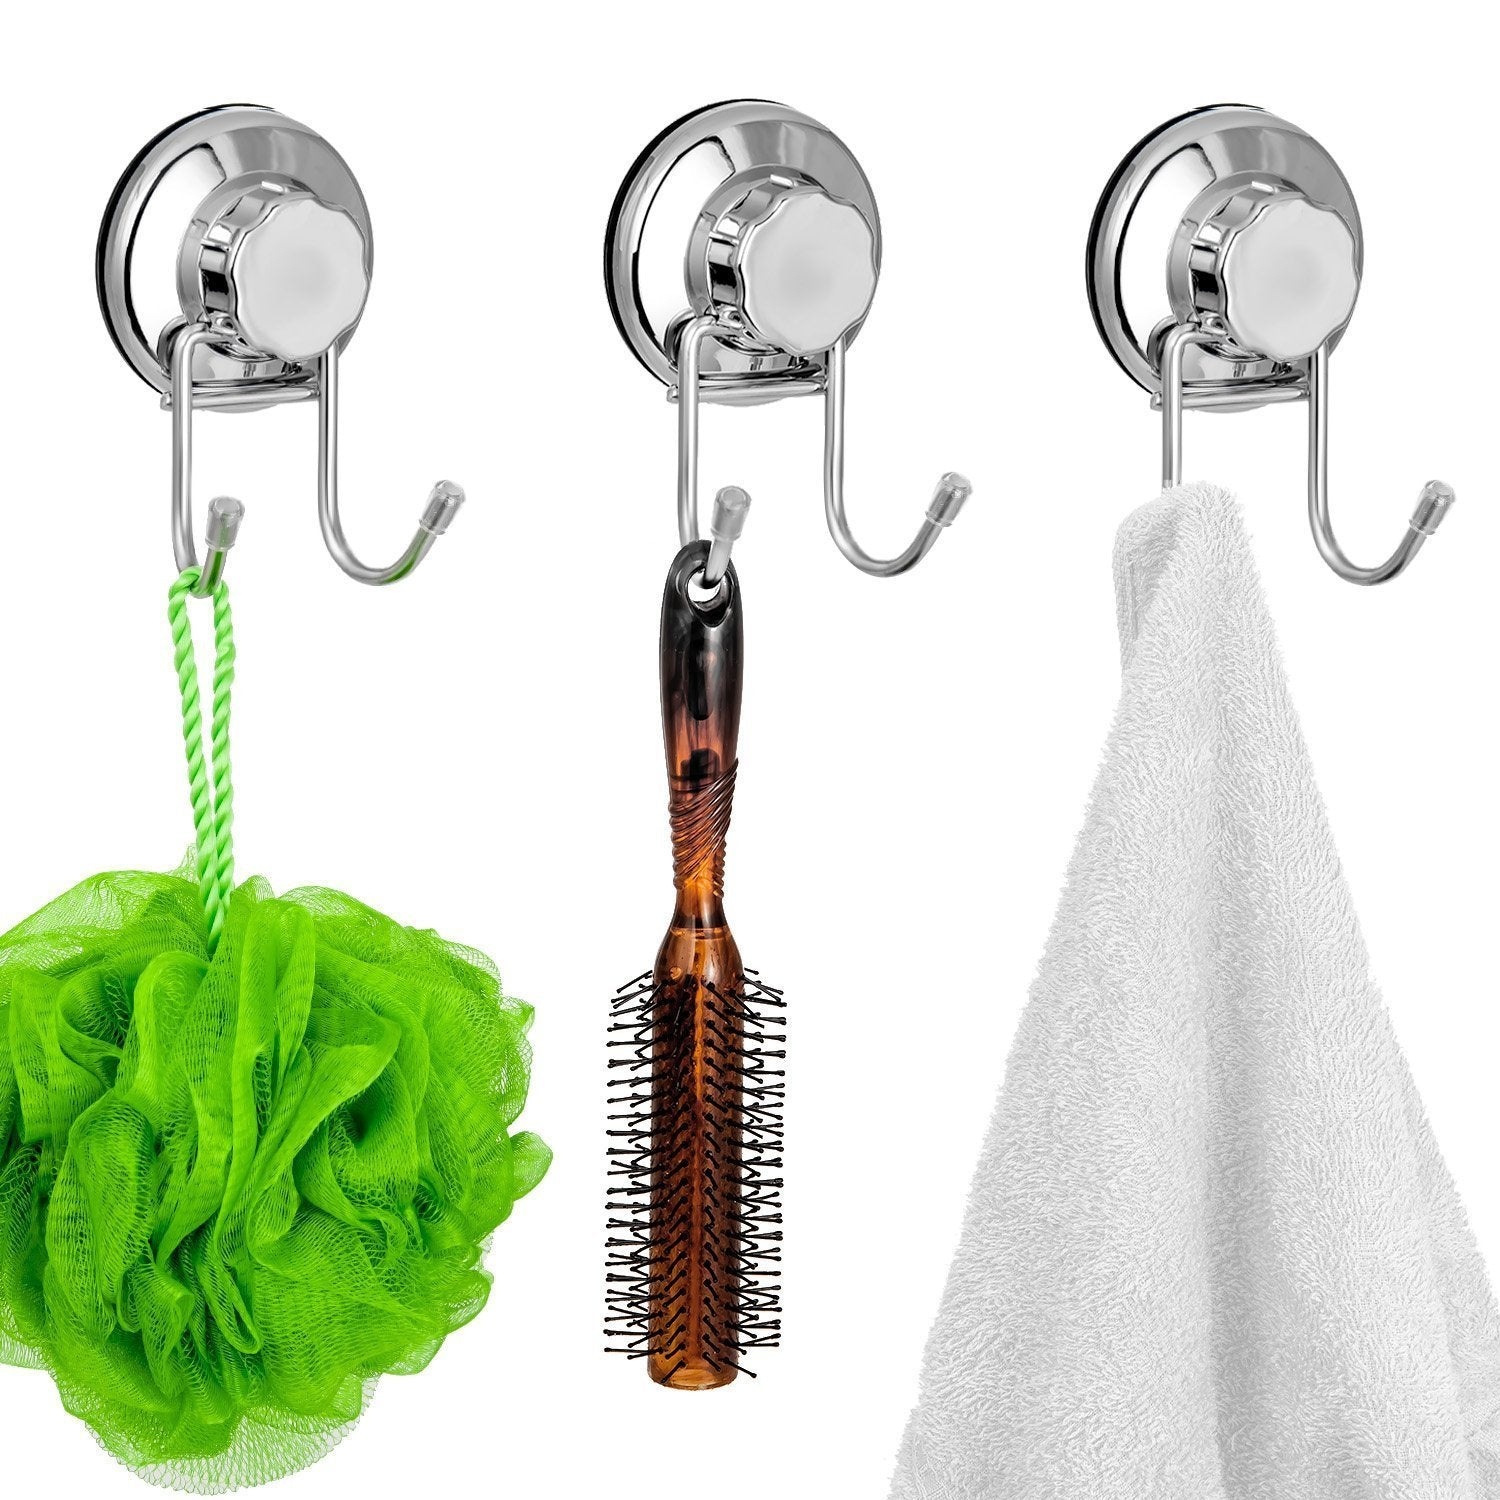 Products sanno vacumn hook suction cups for flat smooth wall surface towel robe bathroom kitchen shower bath coat neverrust stainless steel 3 pack